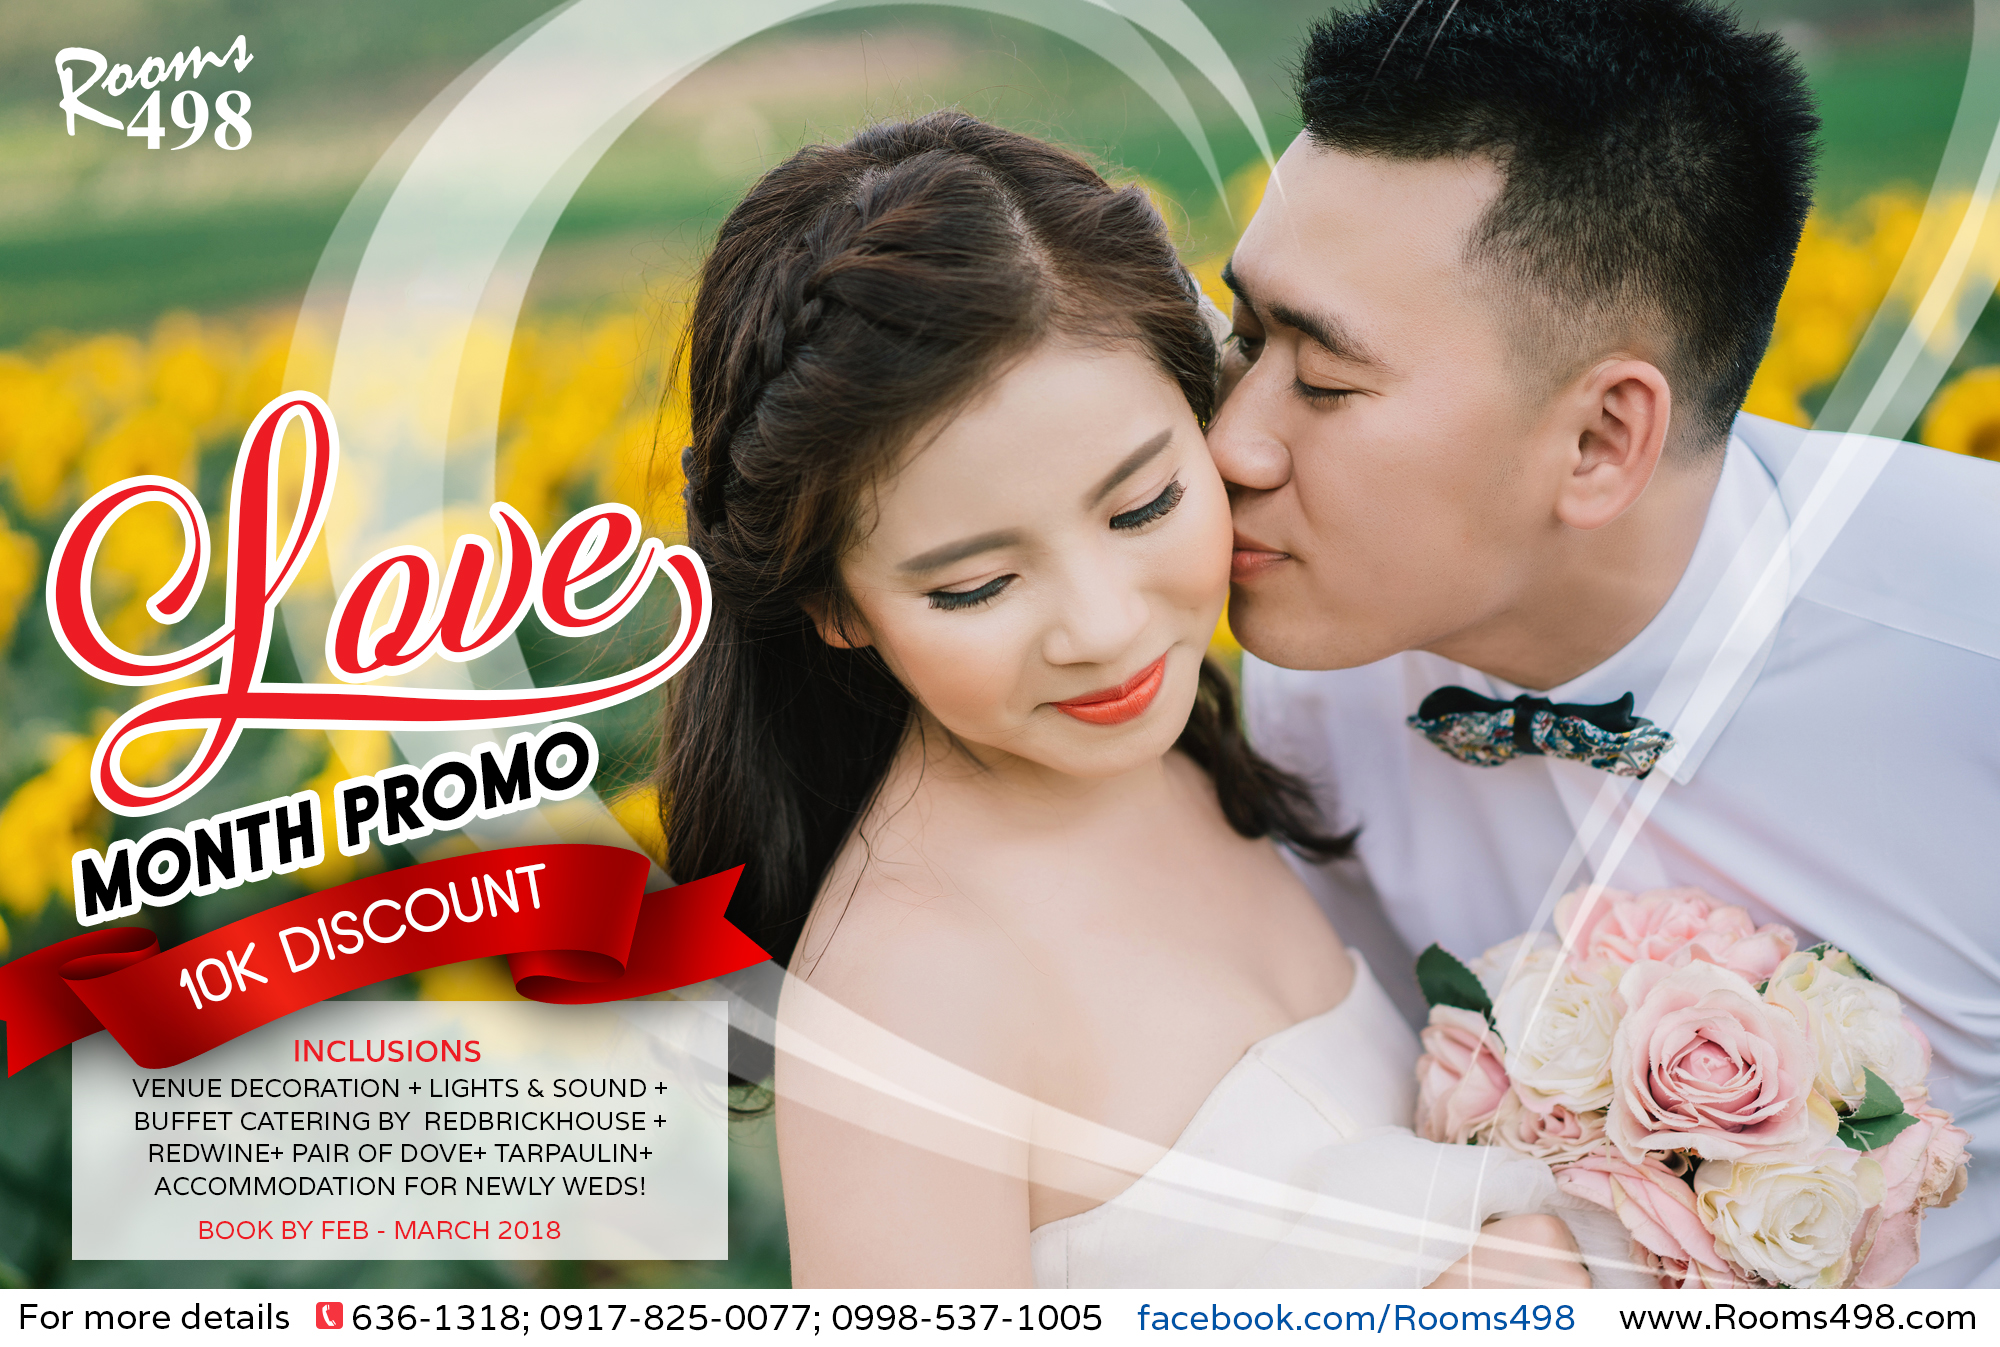 Rooms498 WEDDING PROMO